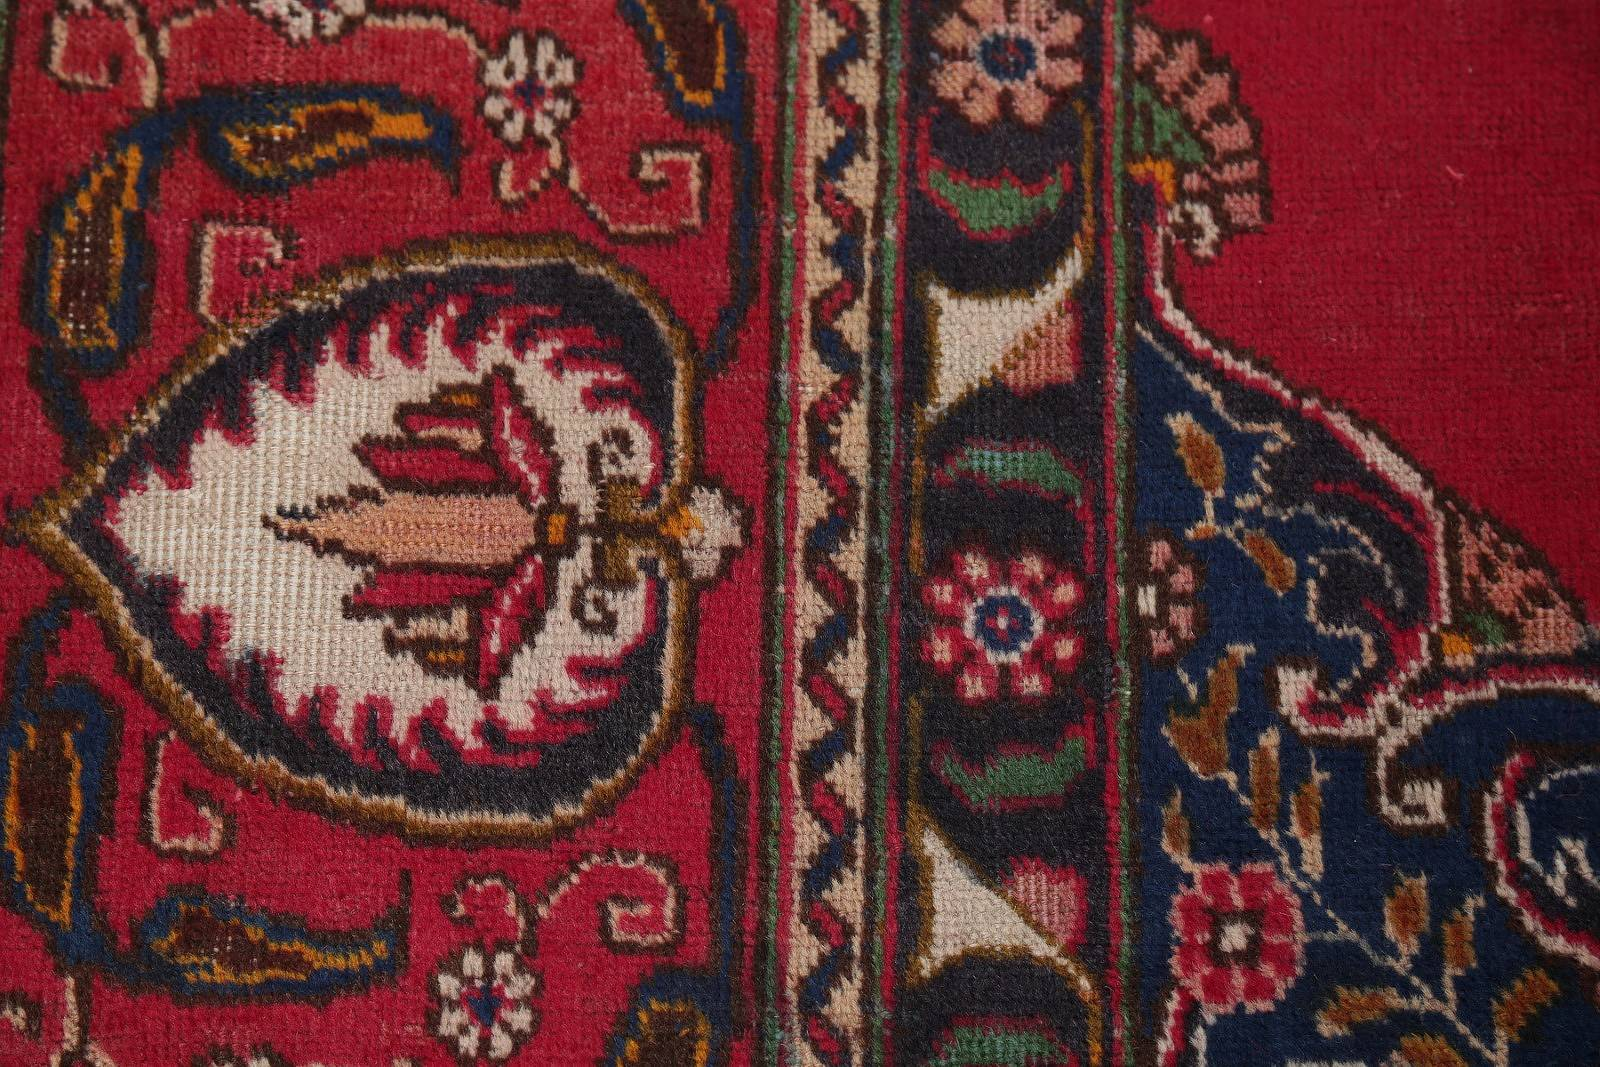 Floral Medallion Red Tabriz Persian Hand-Knotted Area Rug Wool 10x13